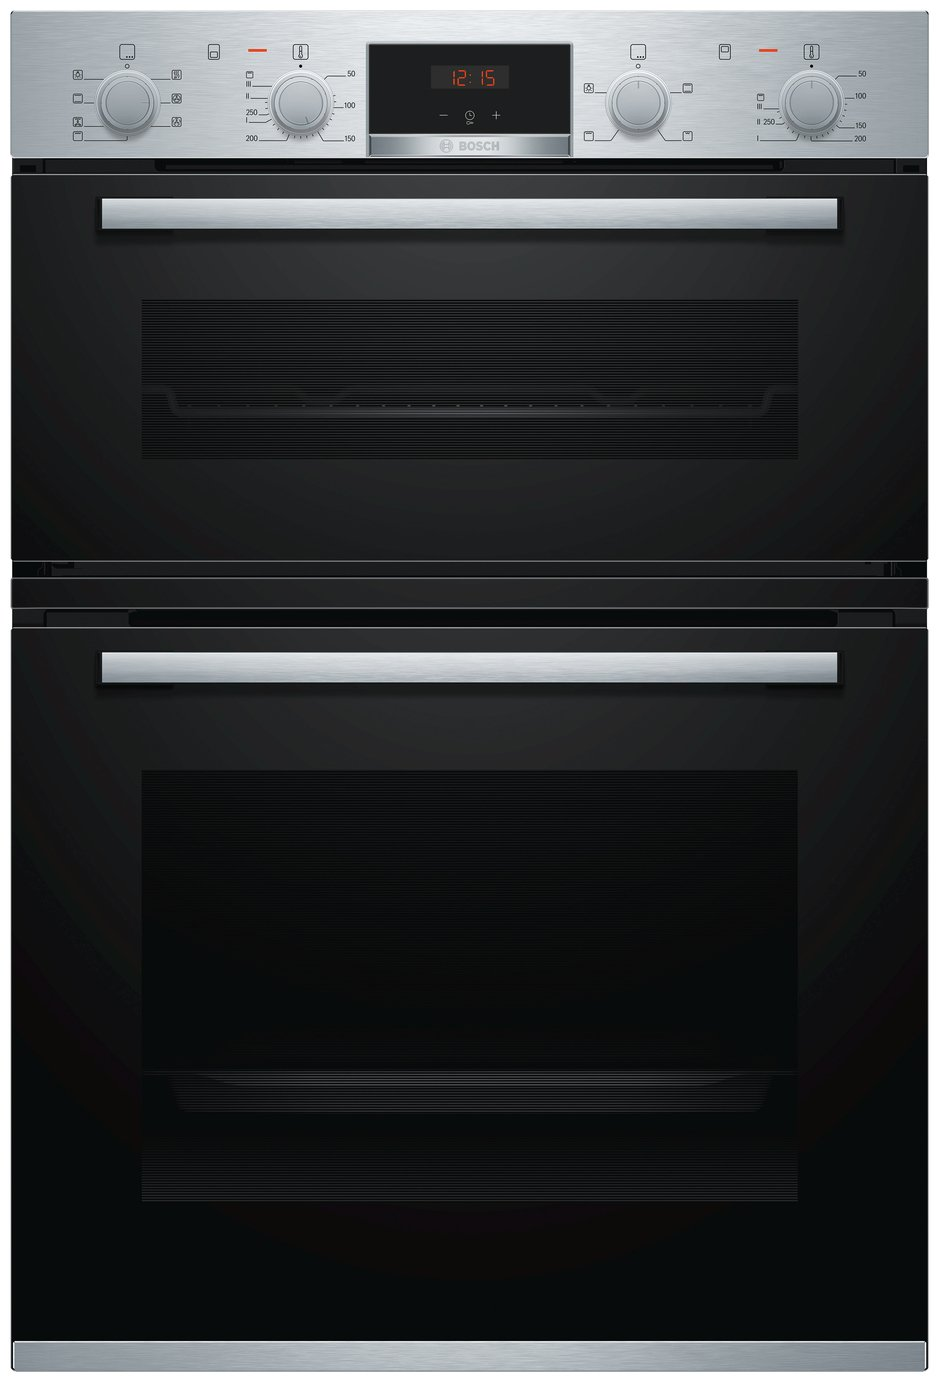 Bosch MBS533BS0B 59.4cm Double Electric Cooker - S/ Steel